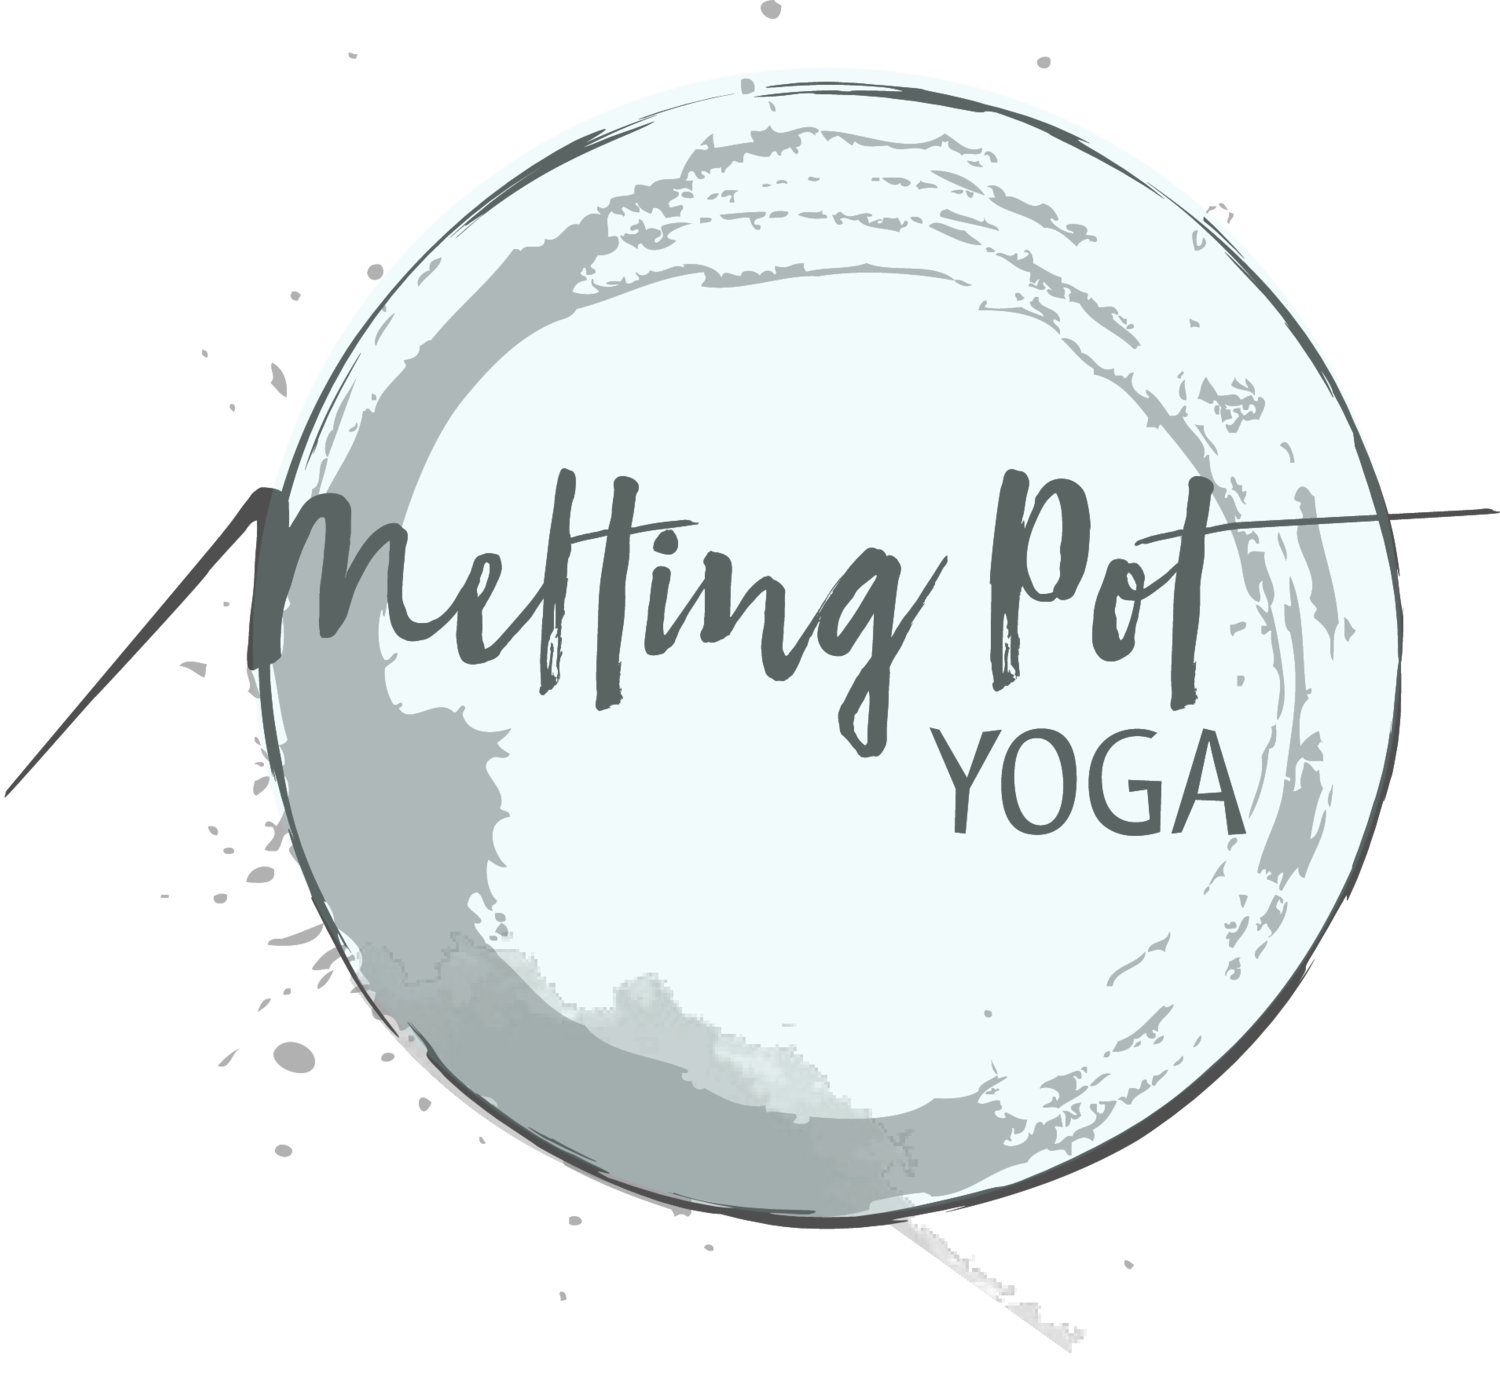 Melting Pot Yoga